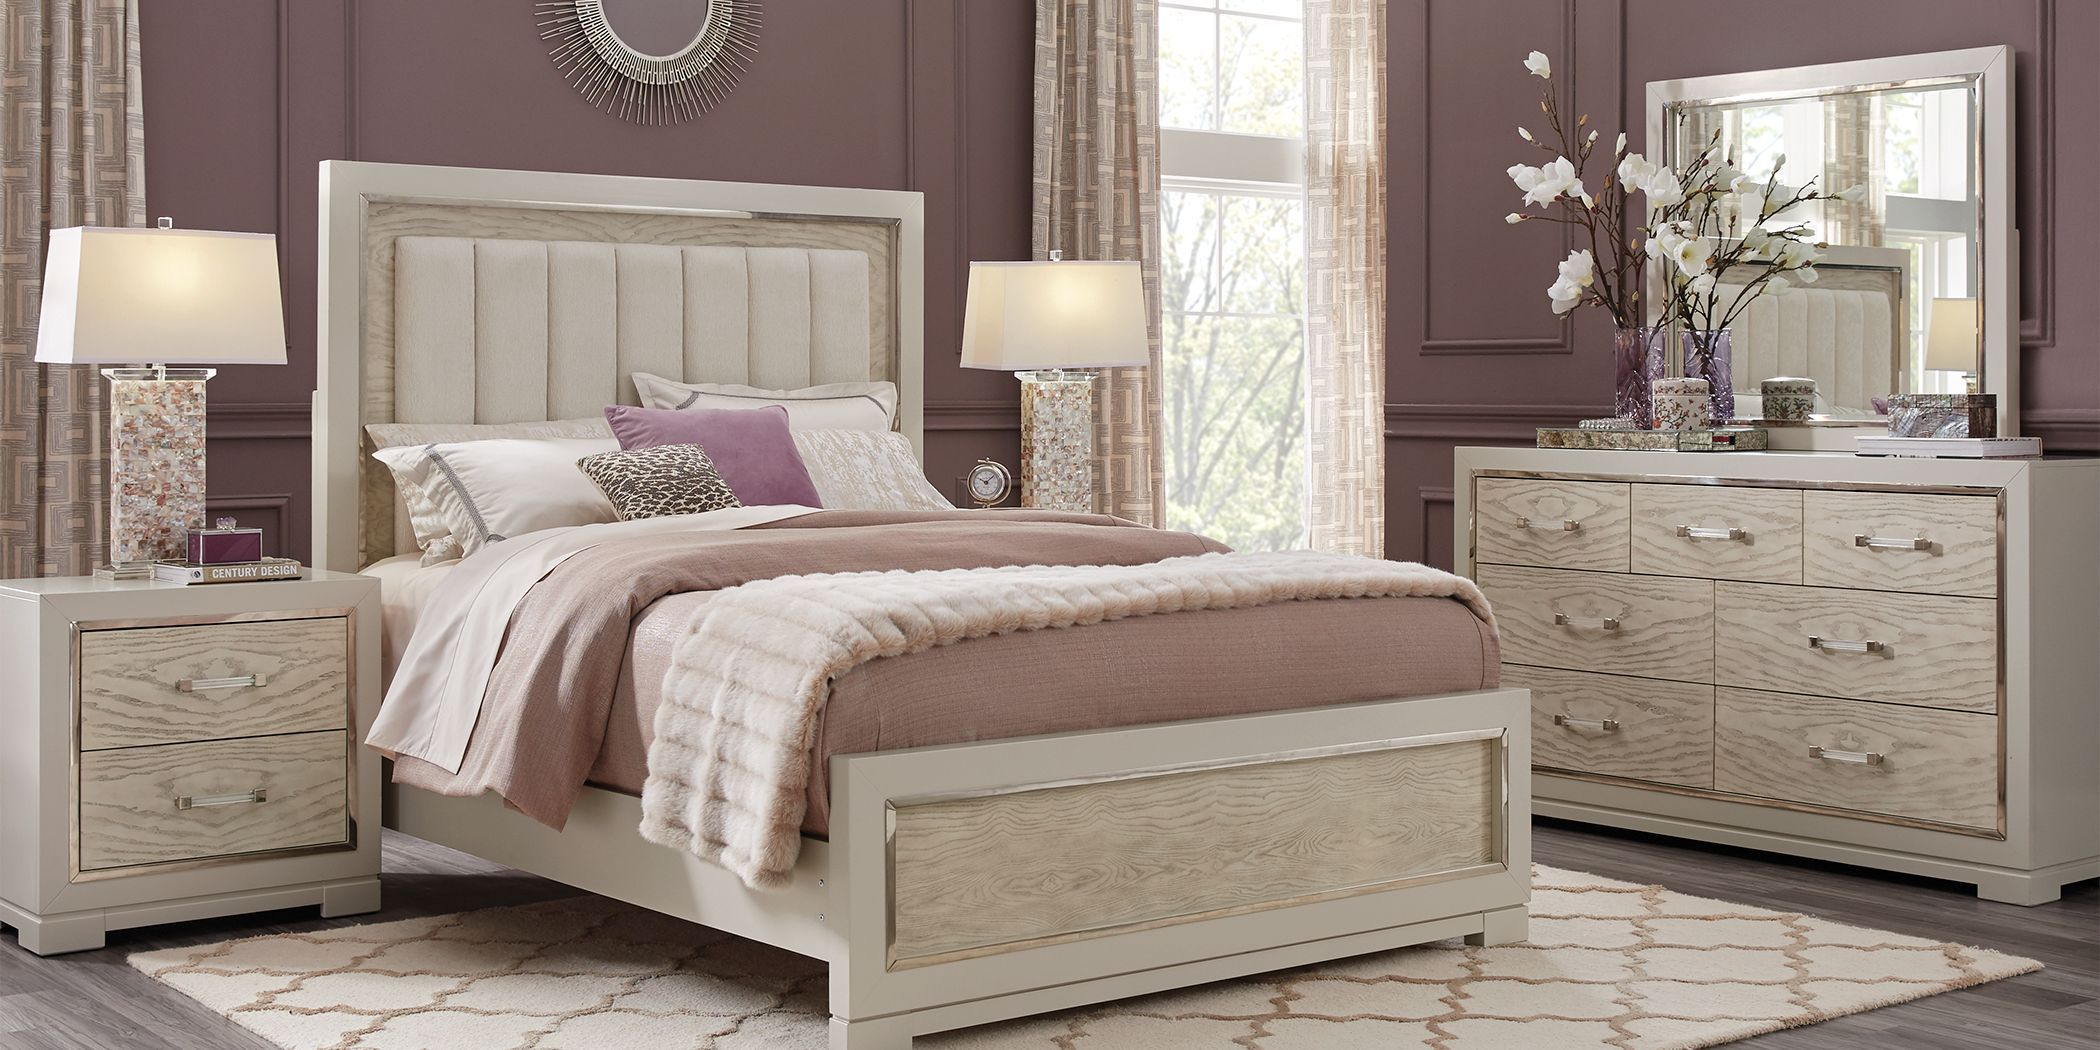 Cindy Crawford Home Bel Air Ivory 7 Pc Queen Panel Bedroom ...